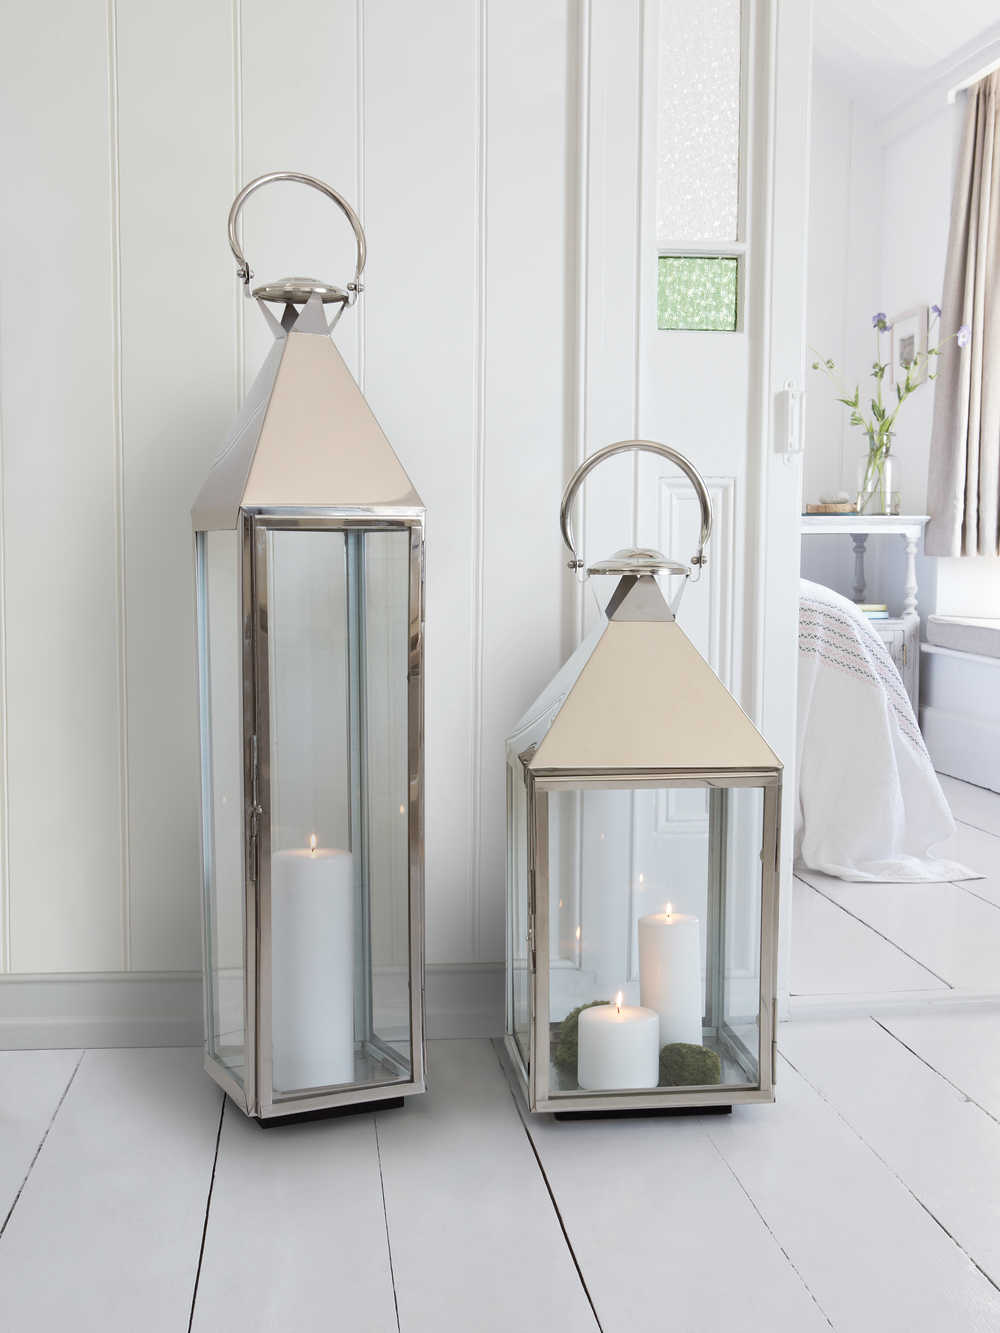 Big Stainless Steel Lanterns Large Candle Lanterns